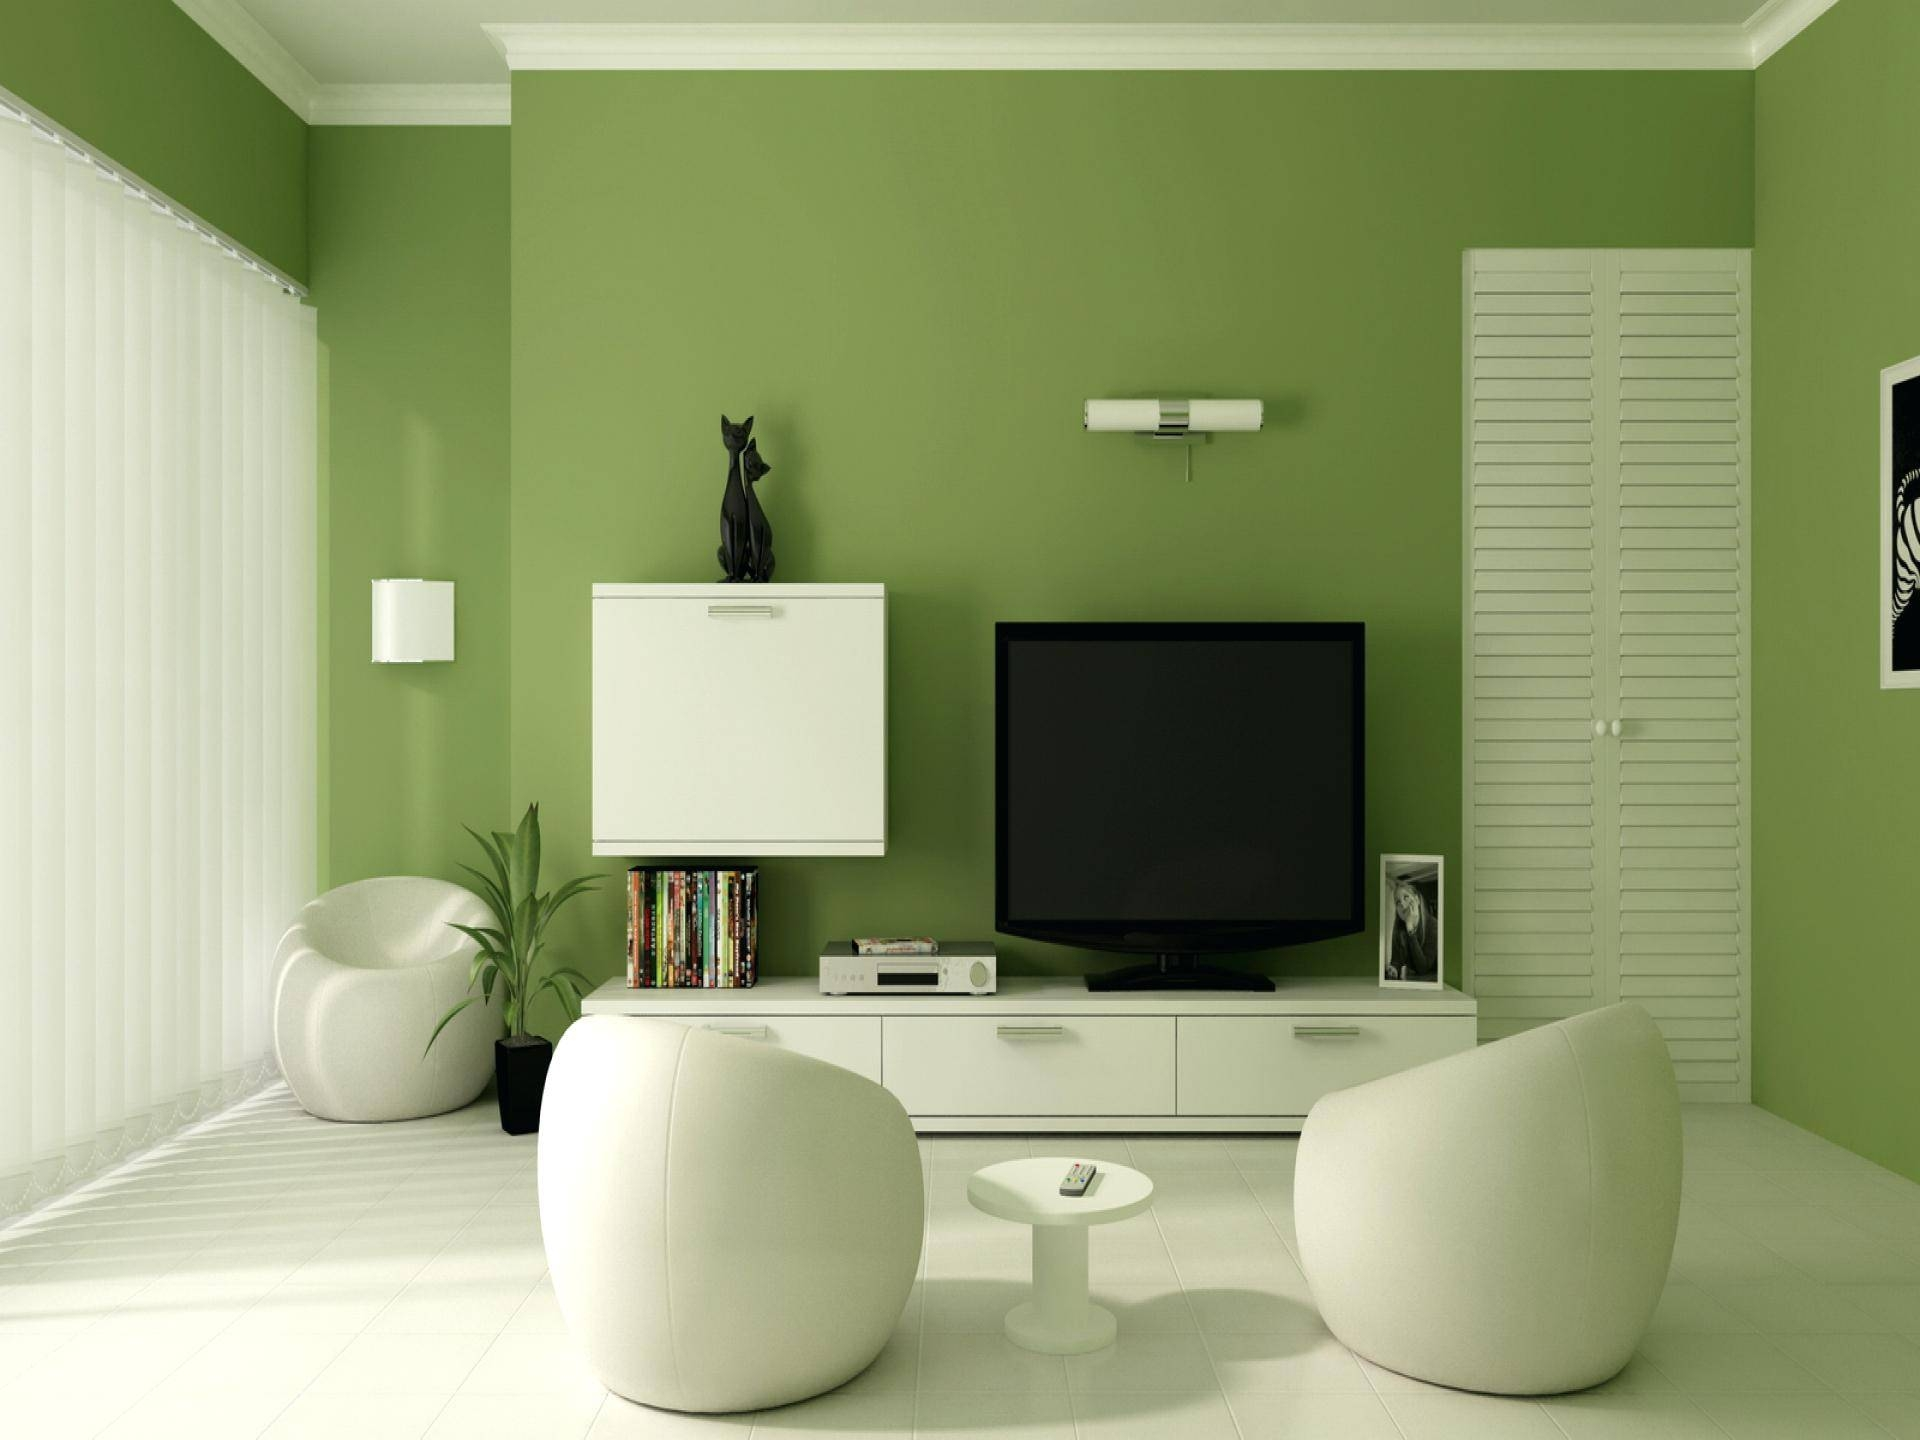 Tv Stand: Enchanting Green Tv Stand For Home Space. Furniture throughout Green Tv Stands (Image 14 of 15)